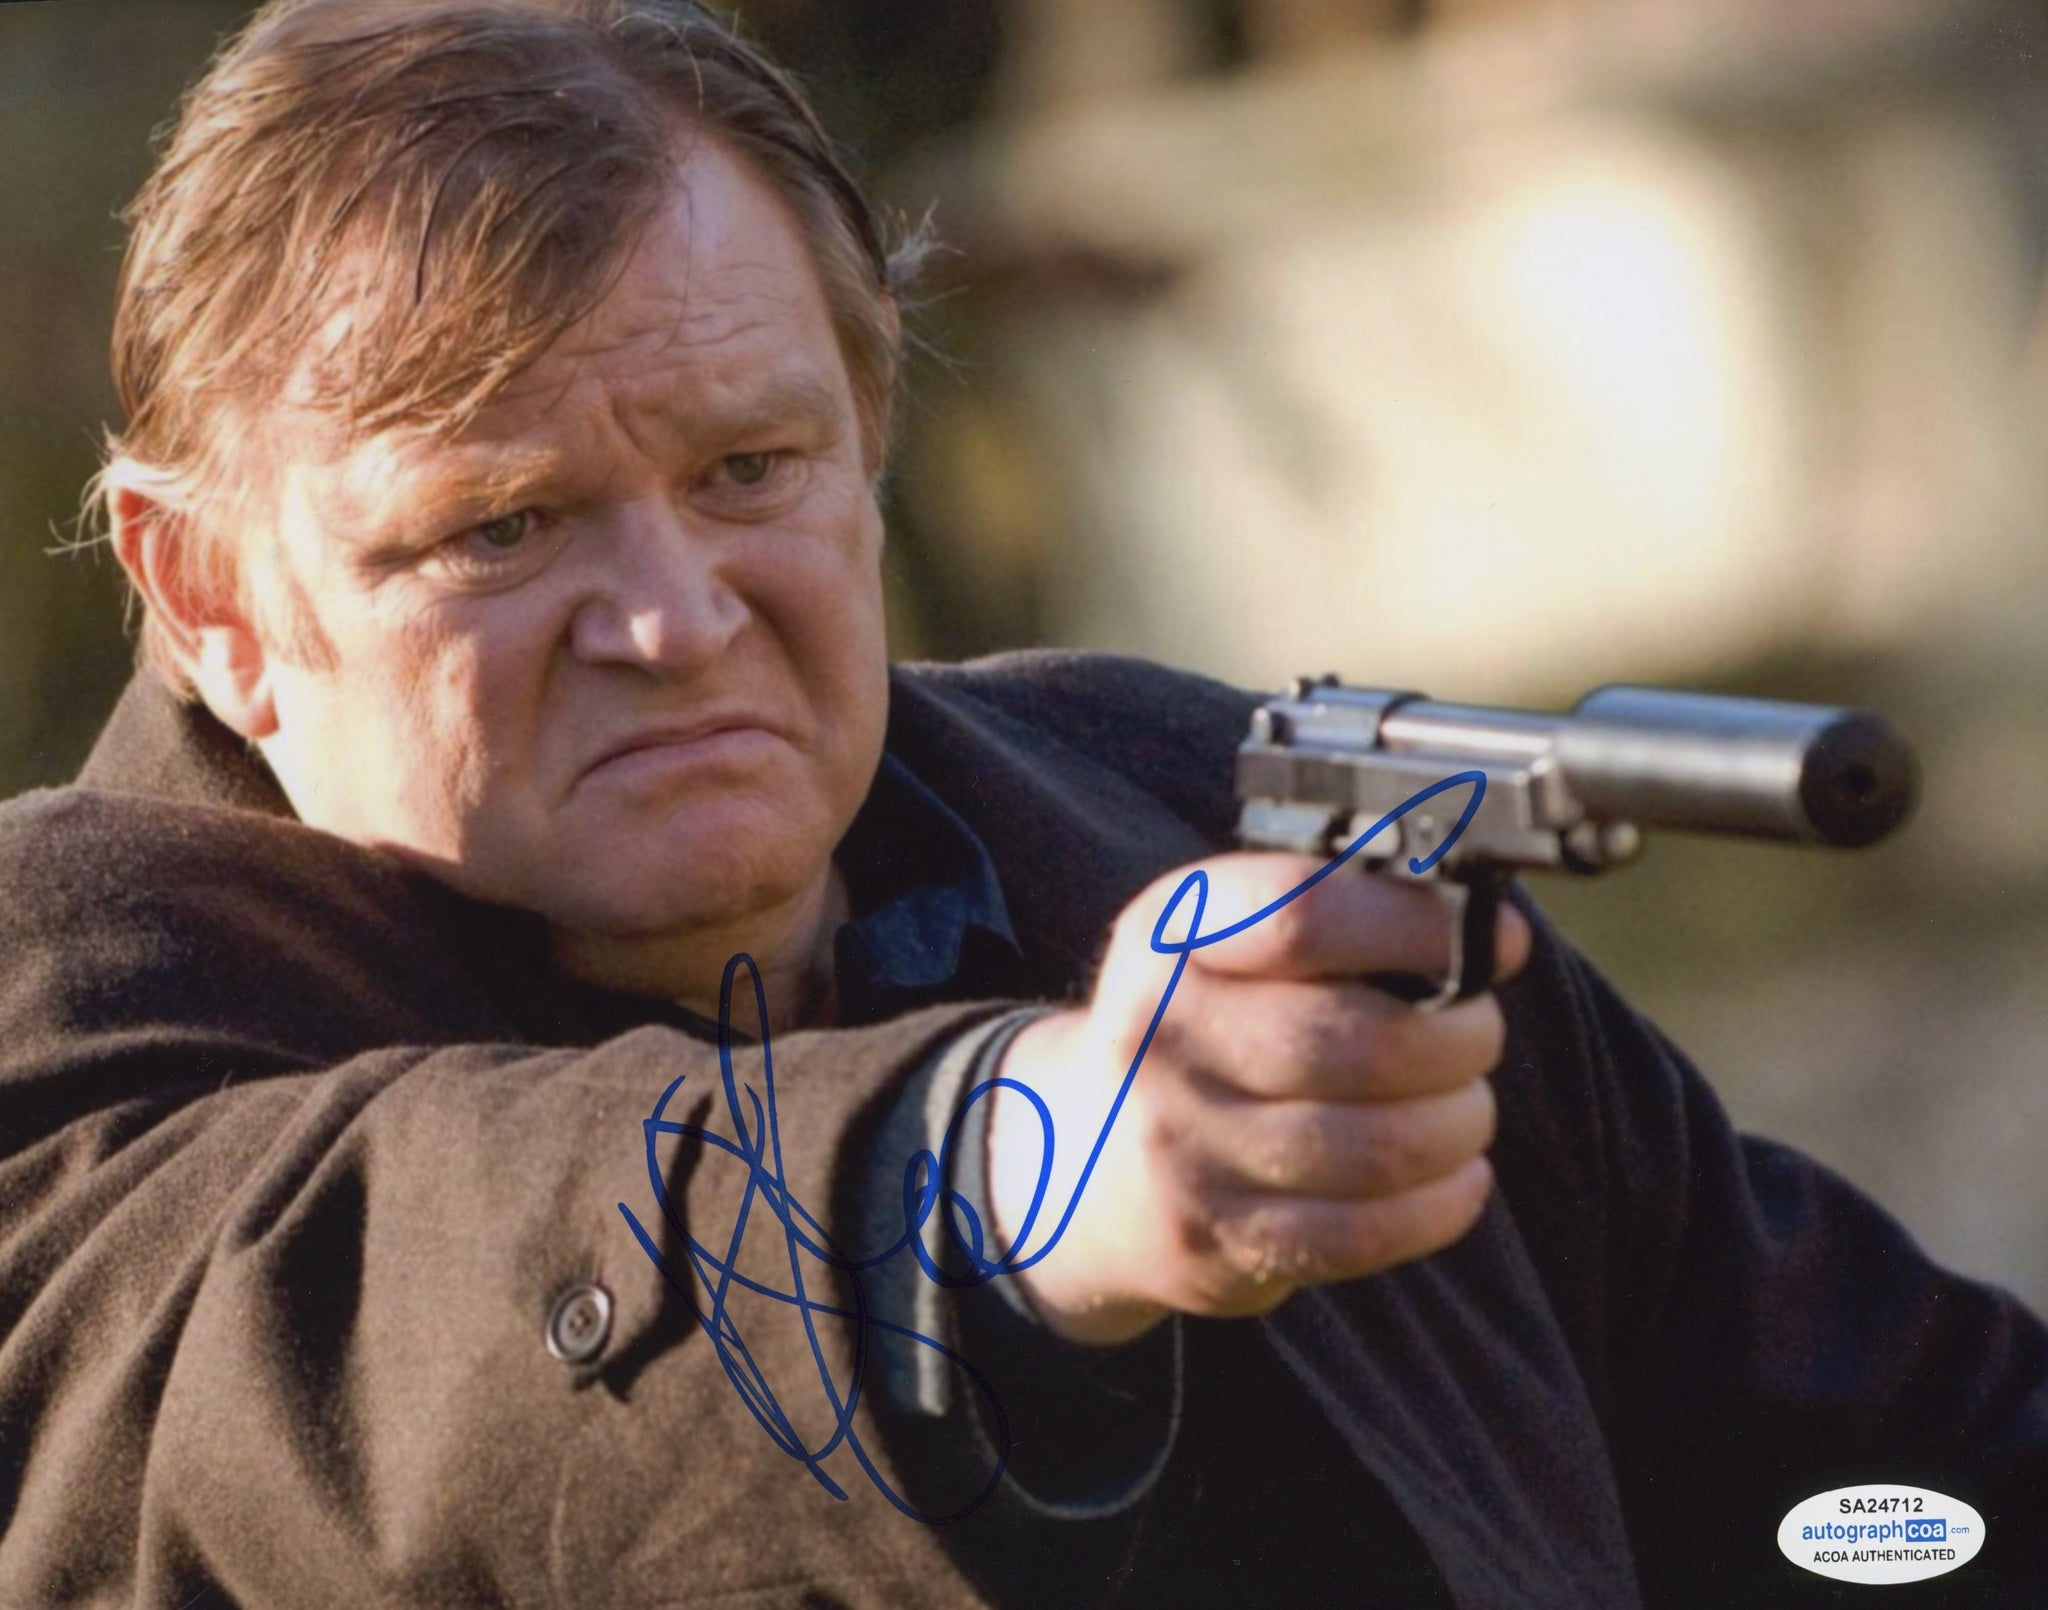 Brendan Gleeson In Bruges Signed Autograph ACOA Photo #7 - Outlaw Hobbies Authentic Autographs